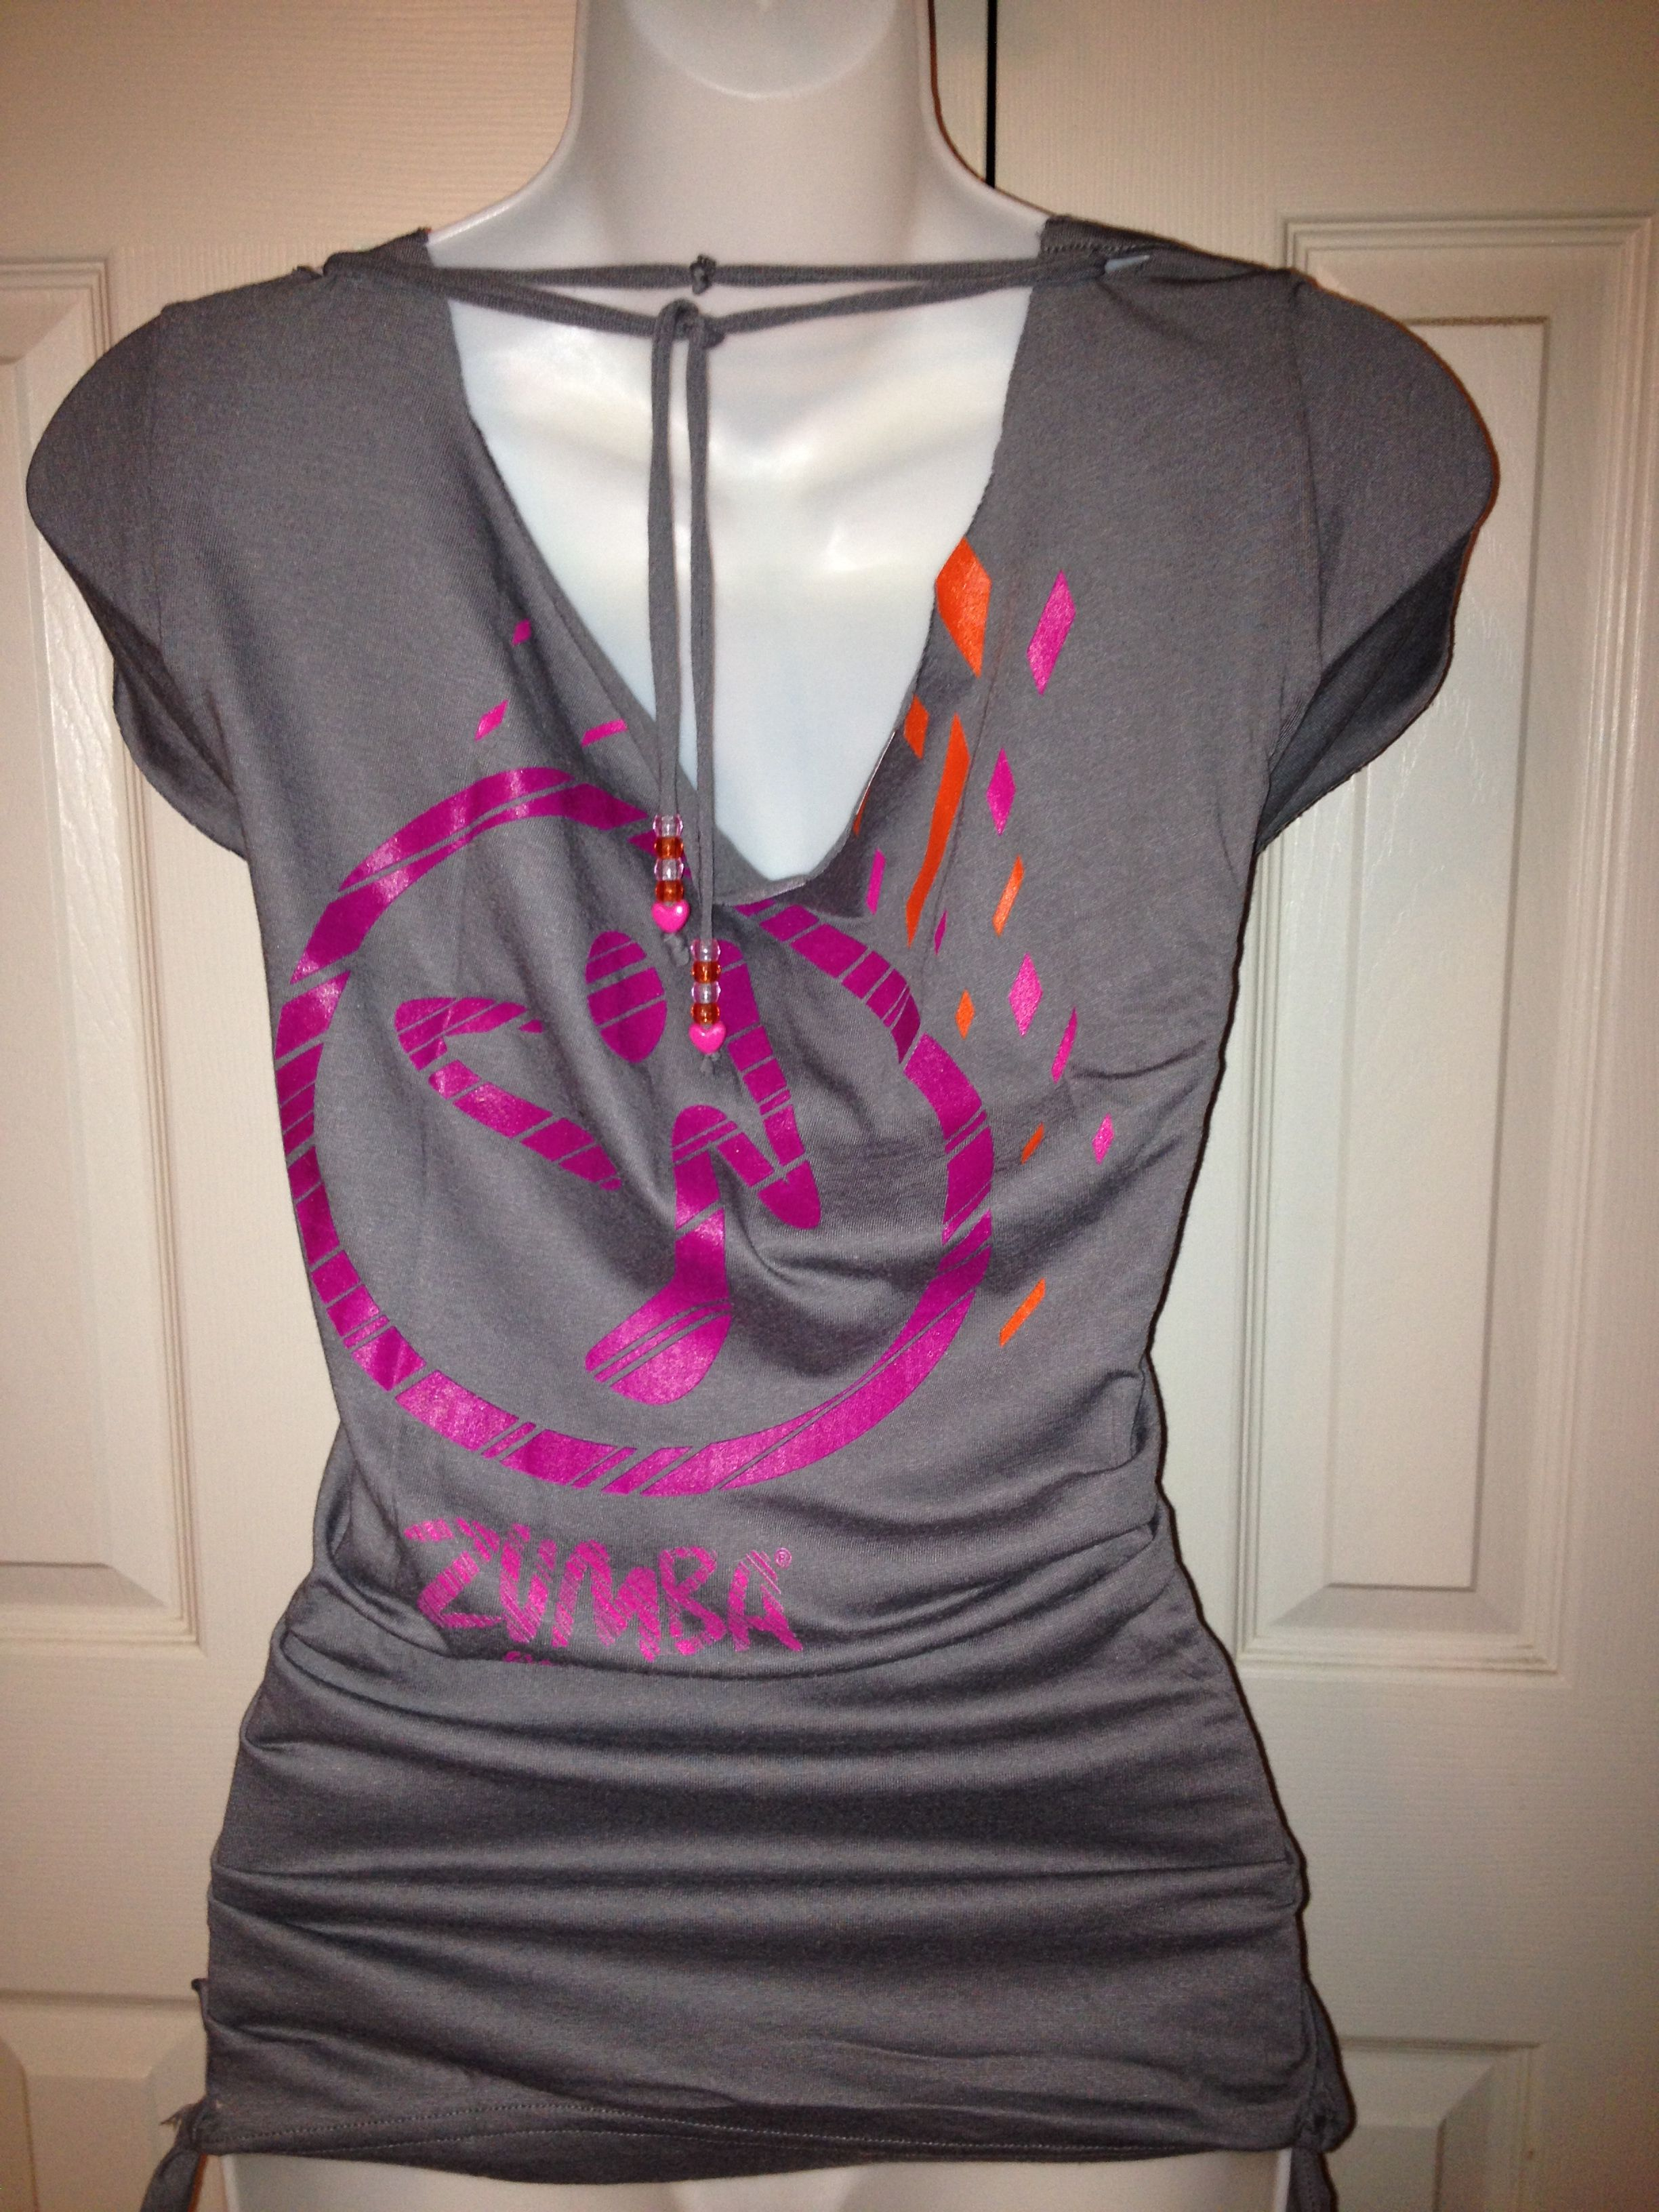 links to a board with tons of diy t-shirt ideas. because those one-size-fits-all zumba t-shirts are huge!